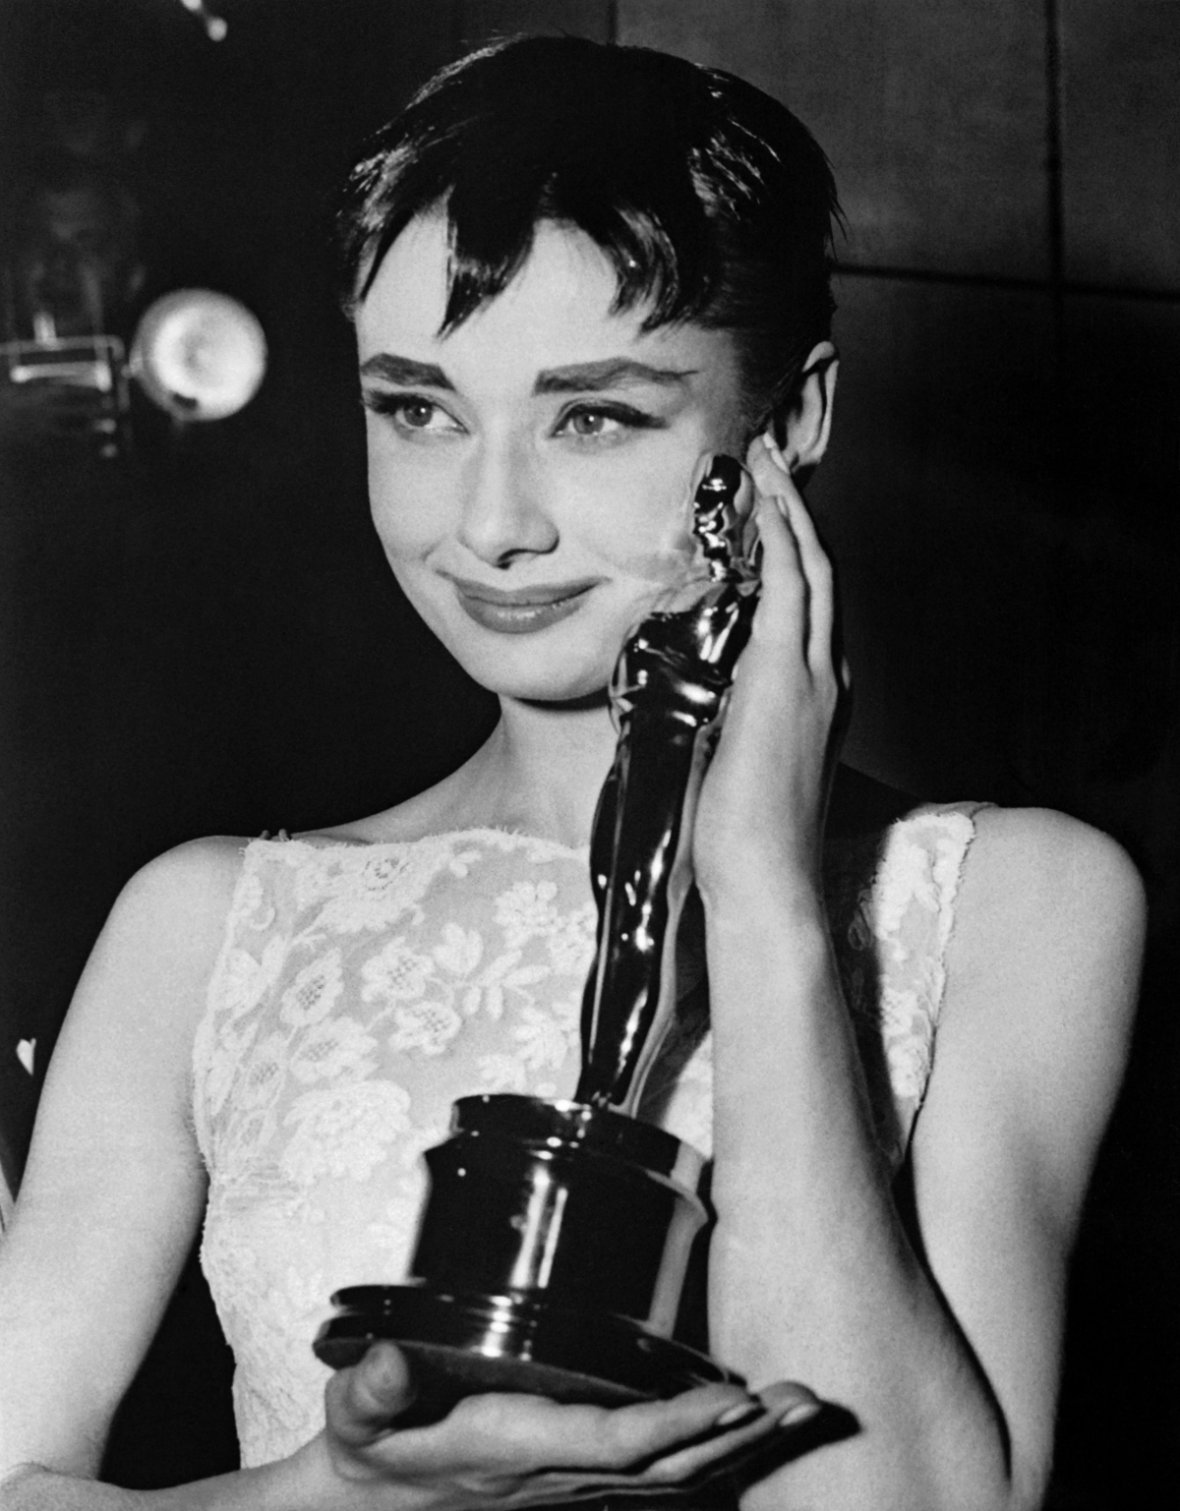 The actress Audrey Hepburn won an Oscar for her first Hollywood role in Roman Holiday